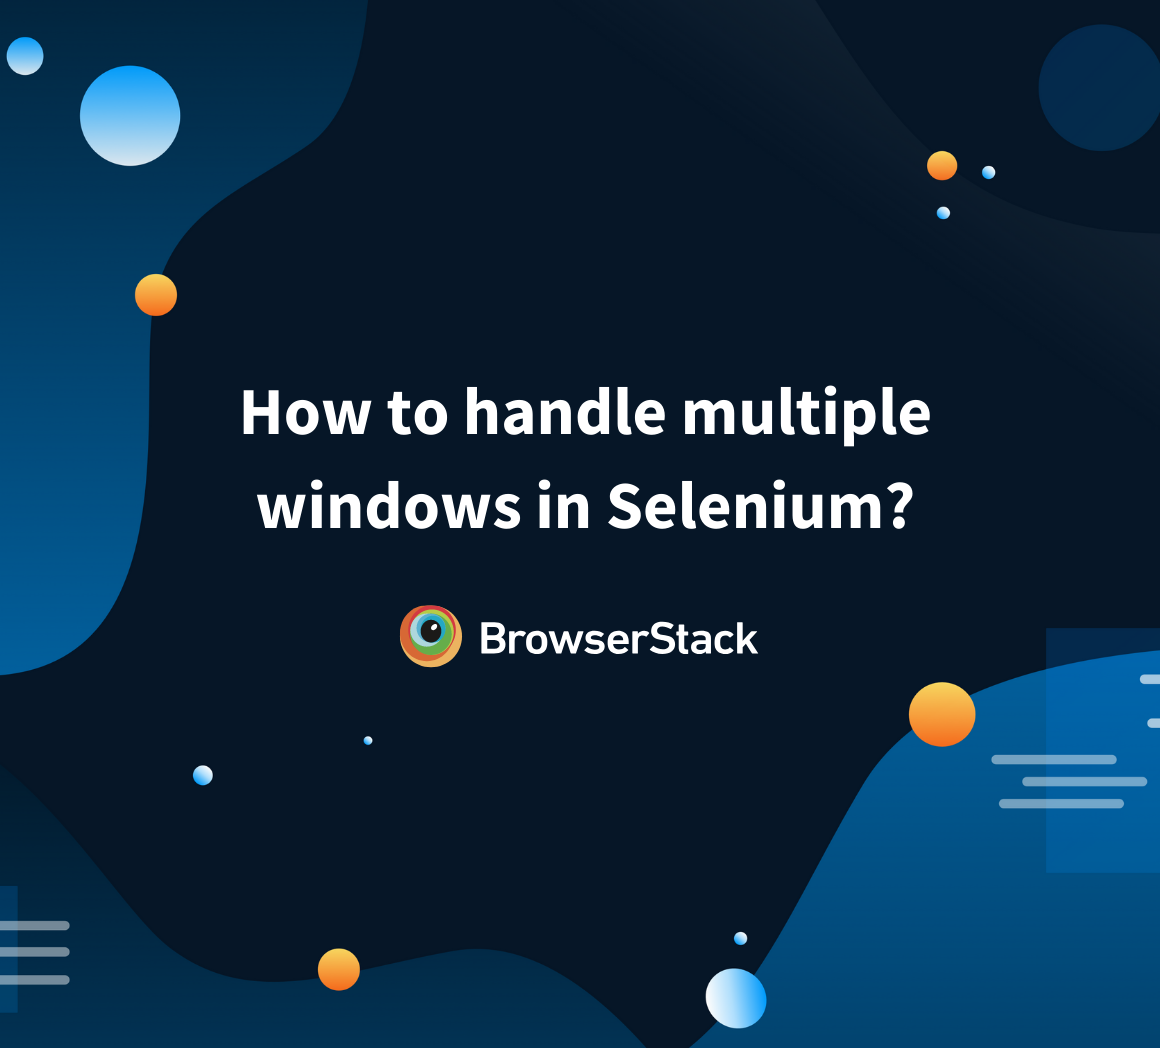 Handling multiple windows in Selenium